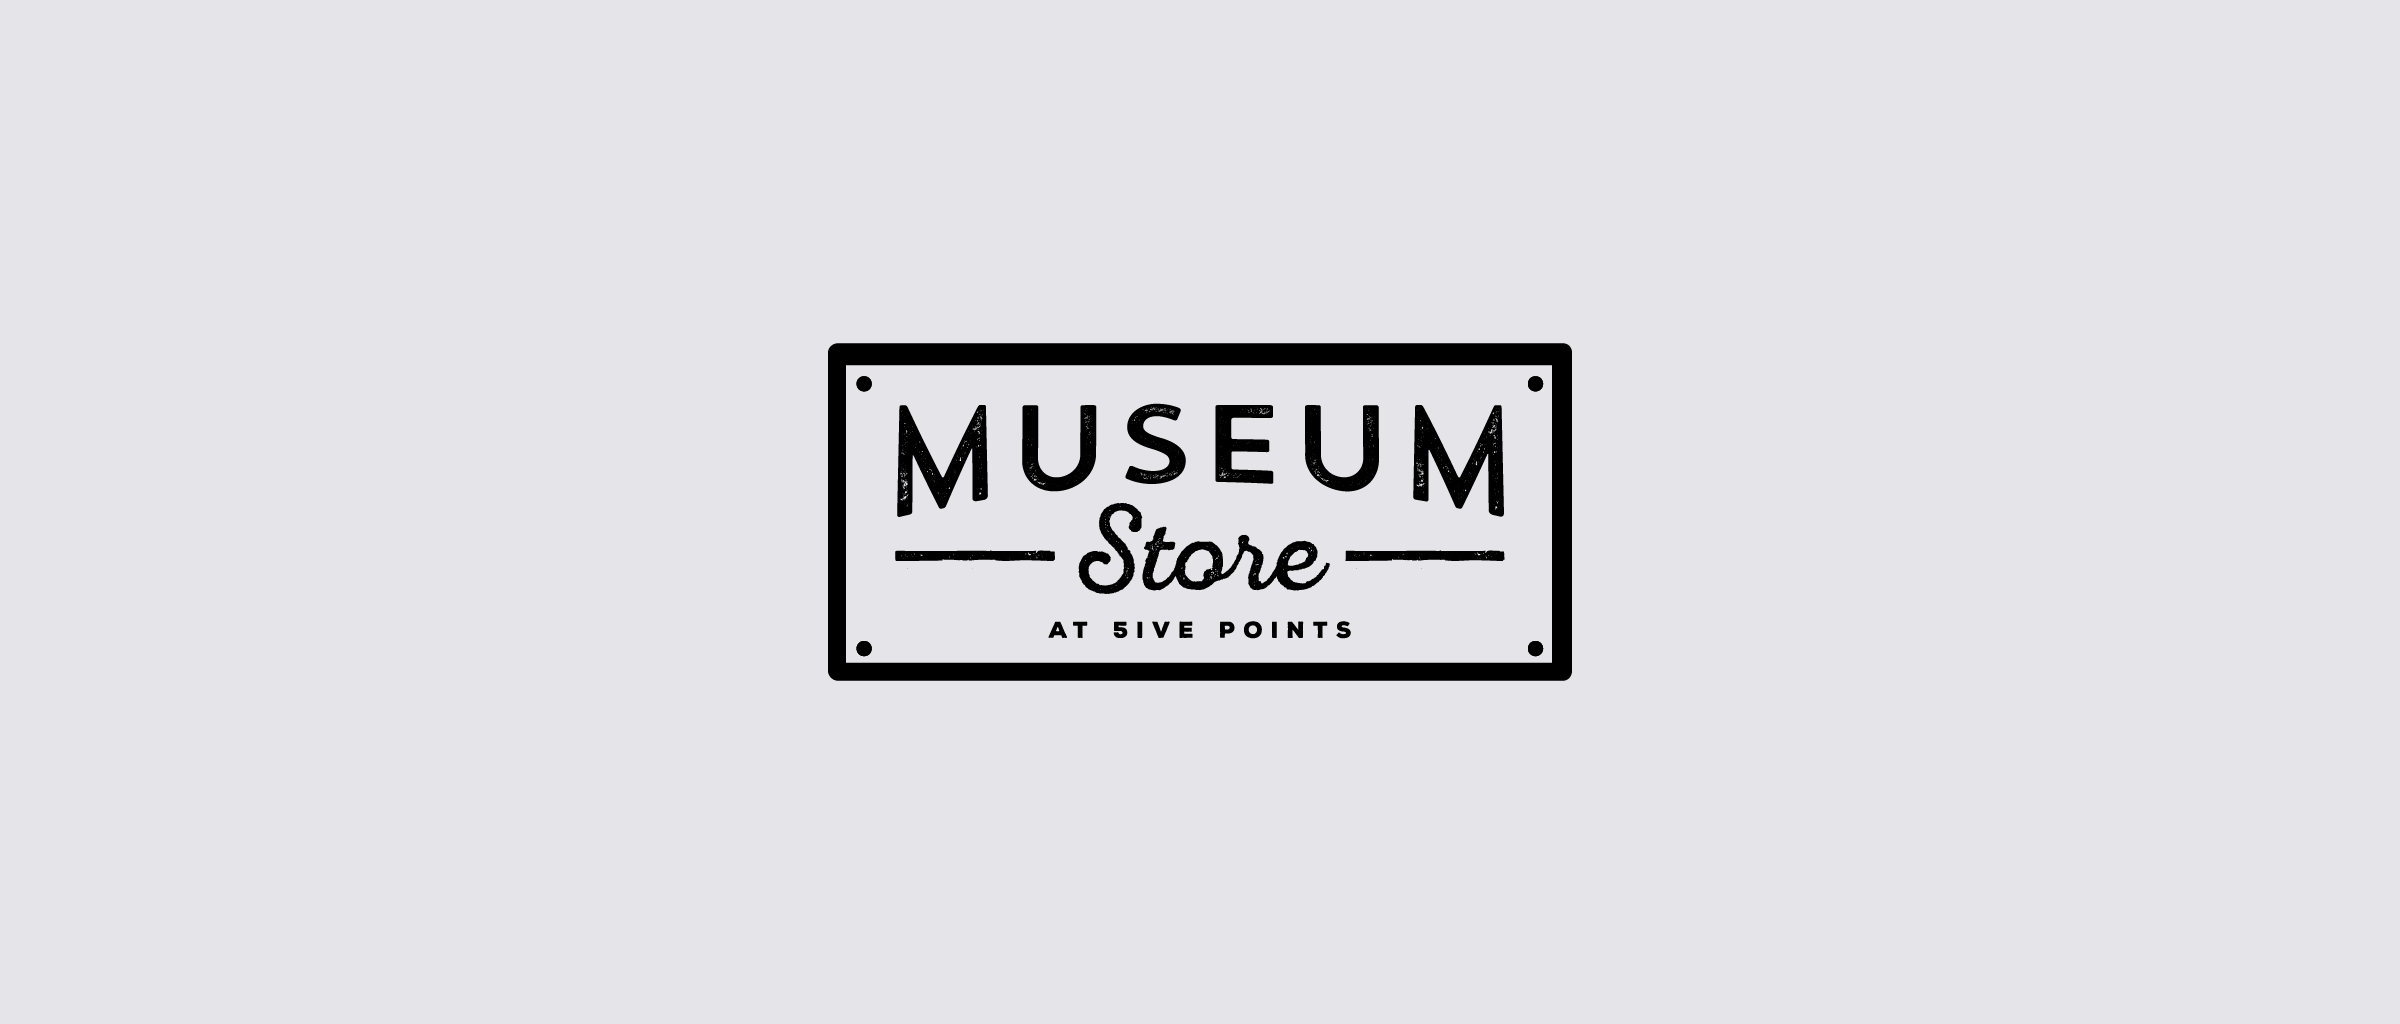 logo_museum-store_bw.png